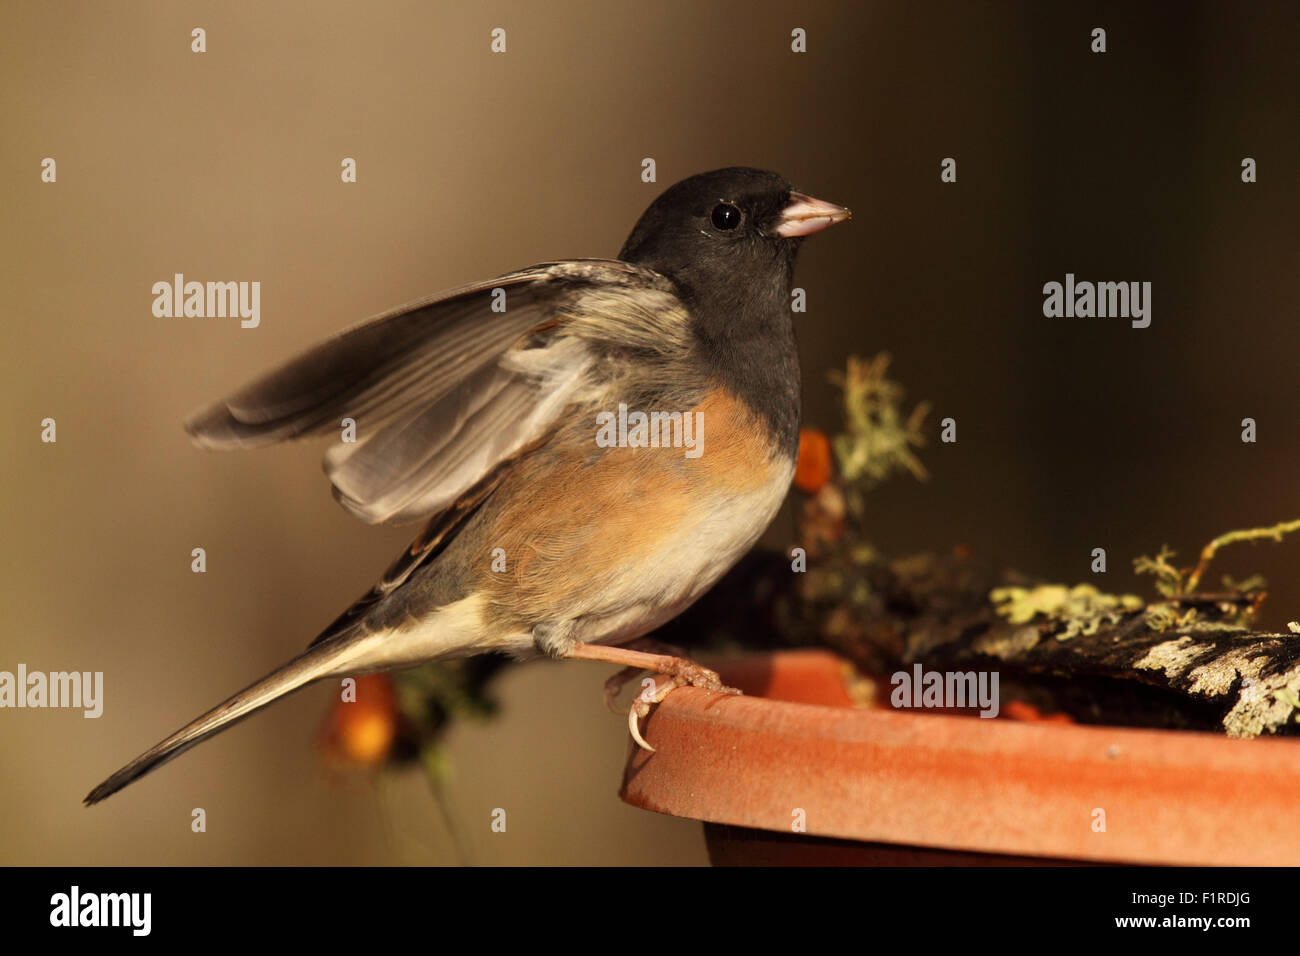 A Junco throwing out its wings. - Stock Image